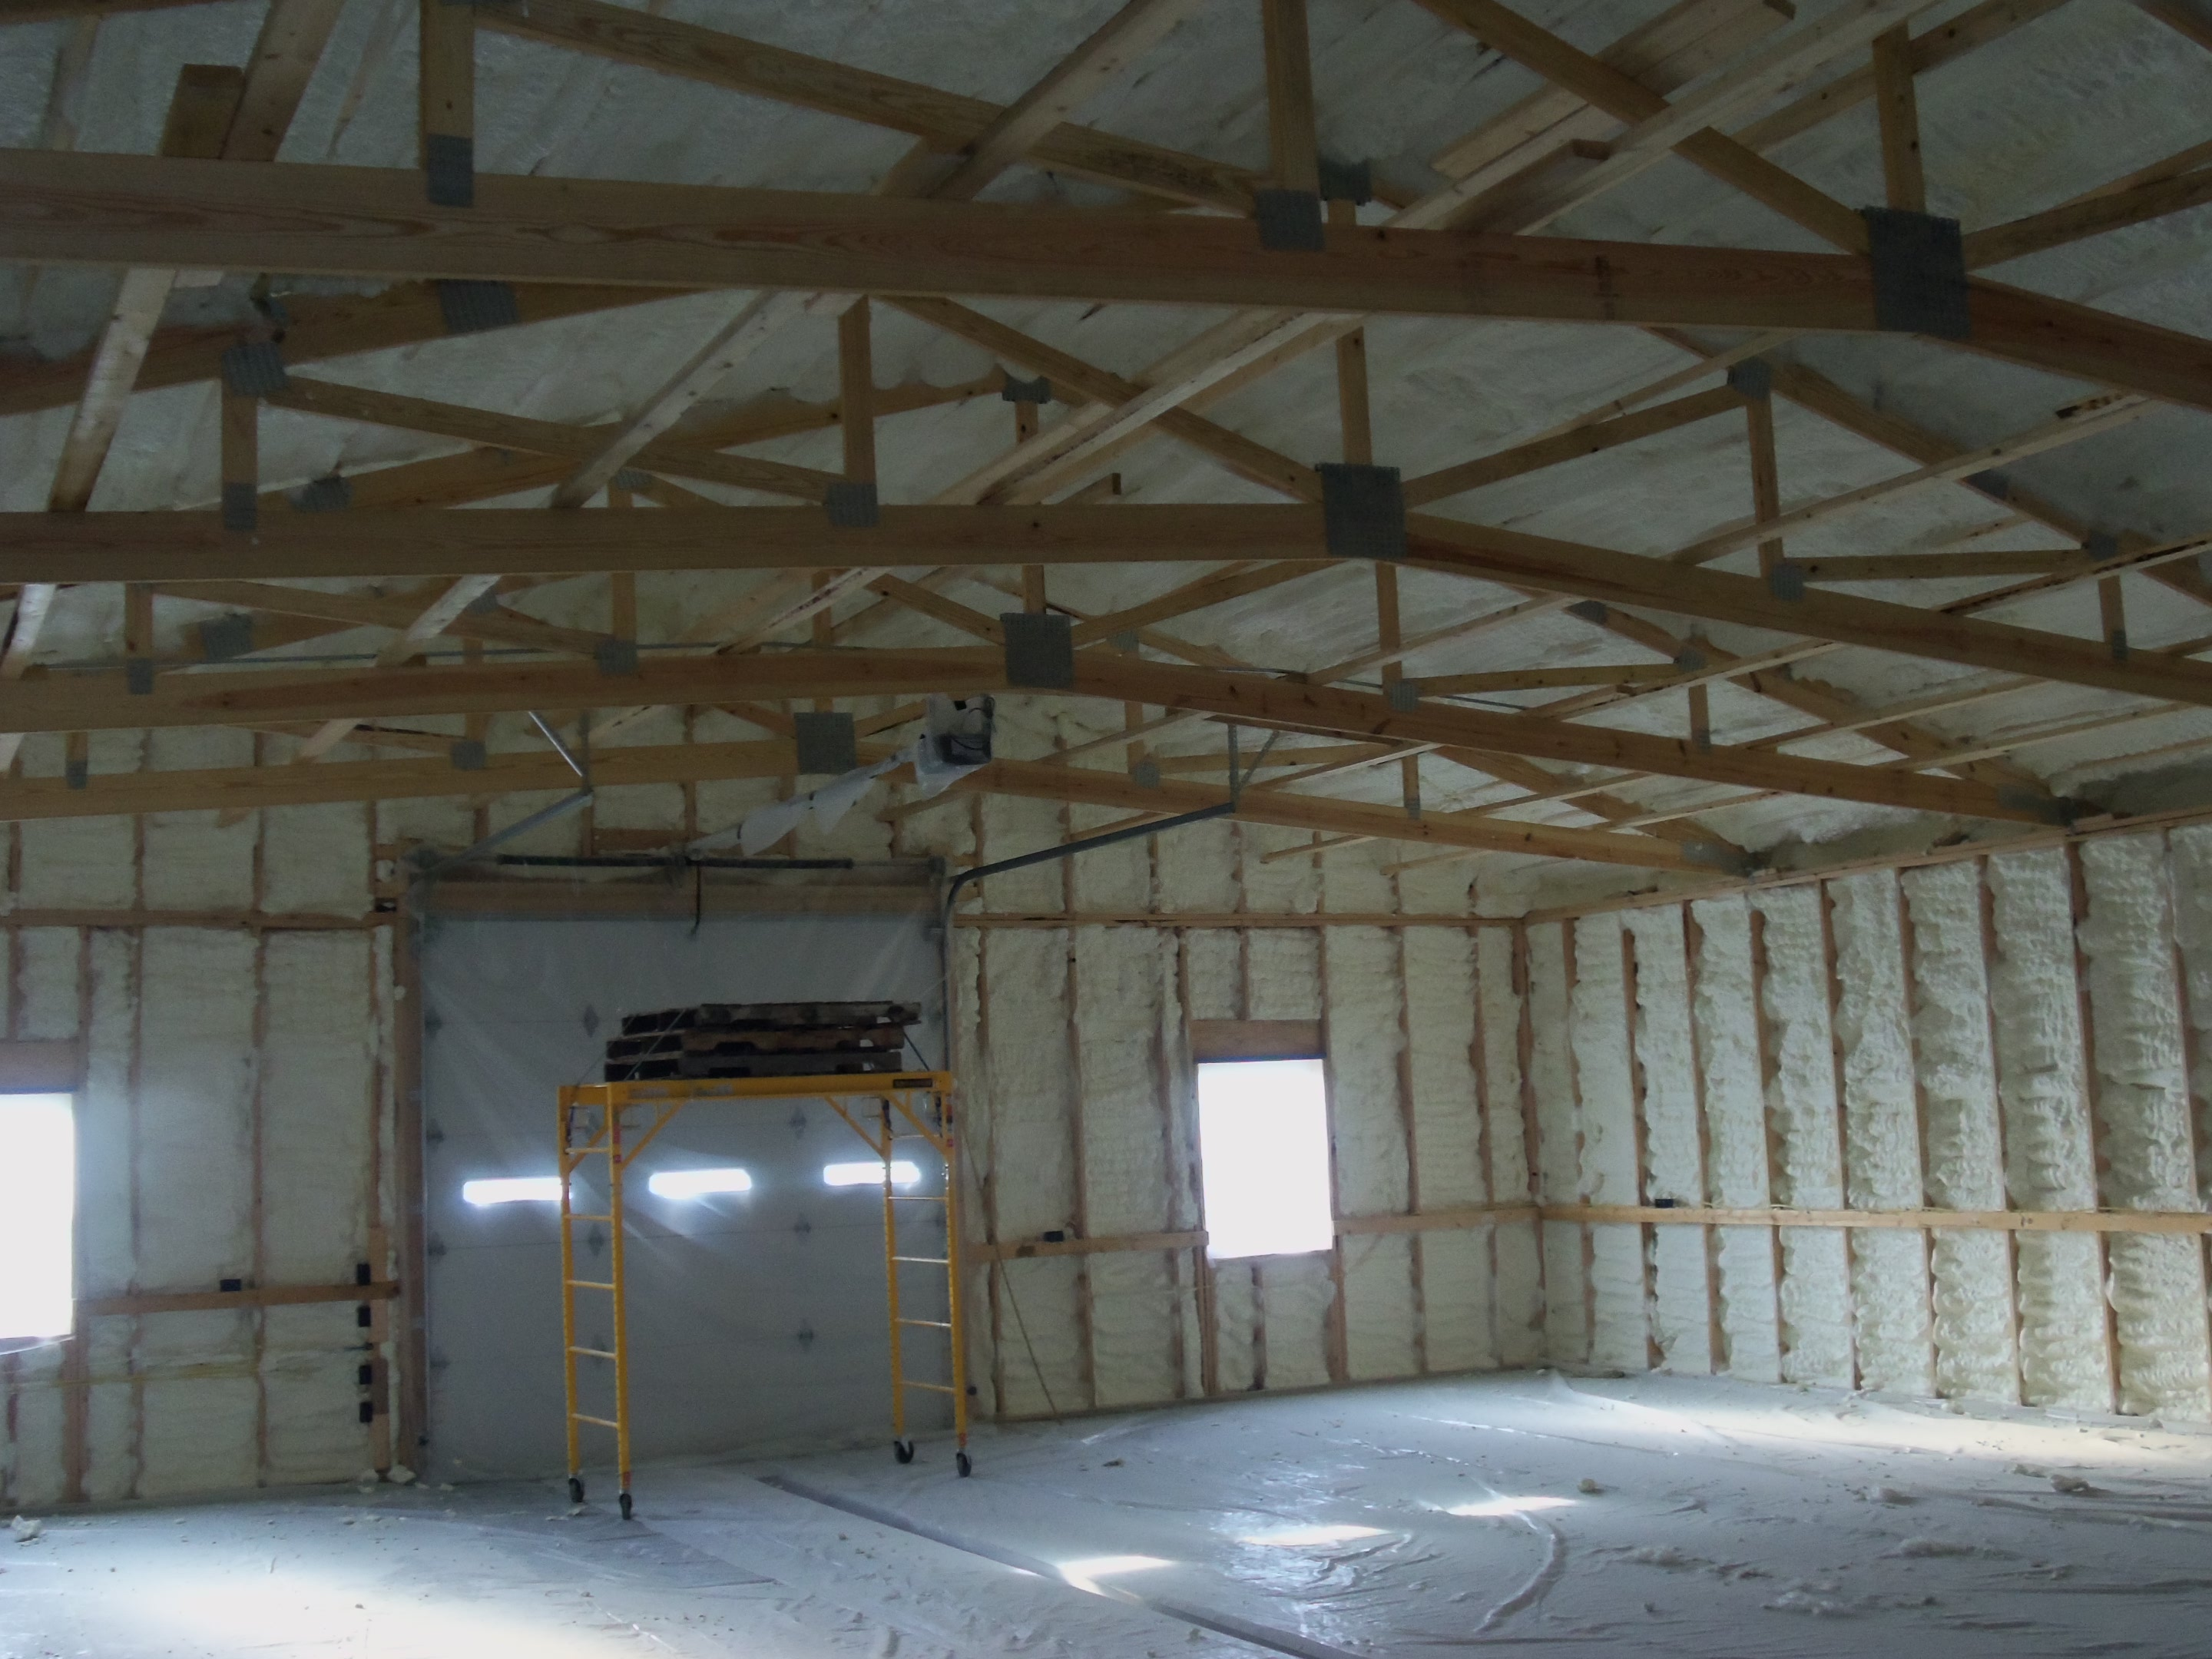 Foam insulation rental equipment pole barn